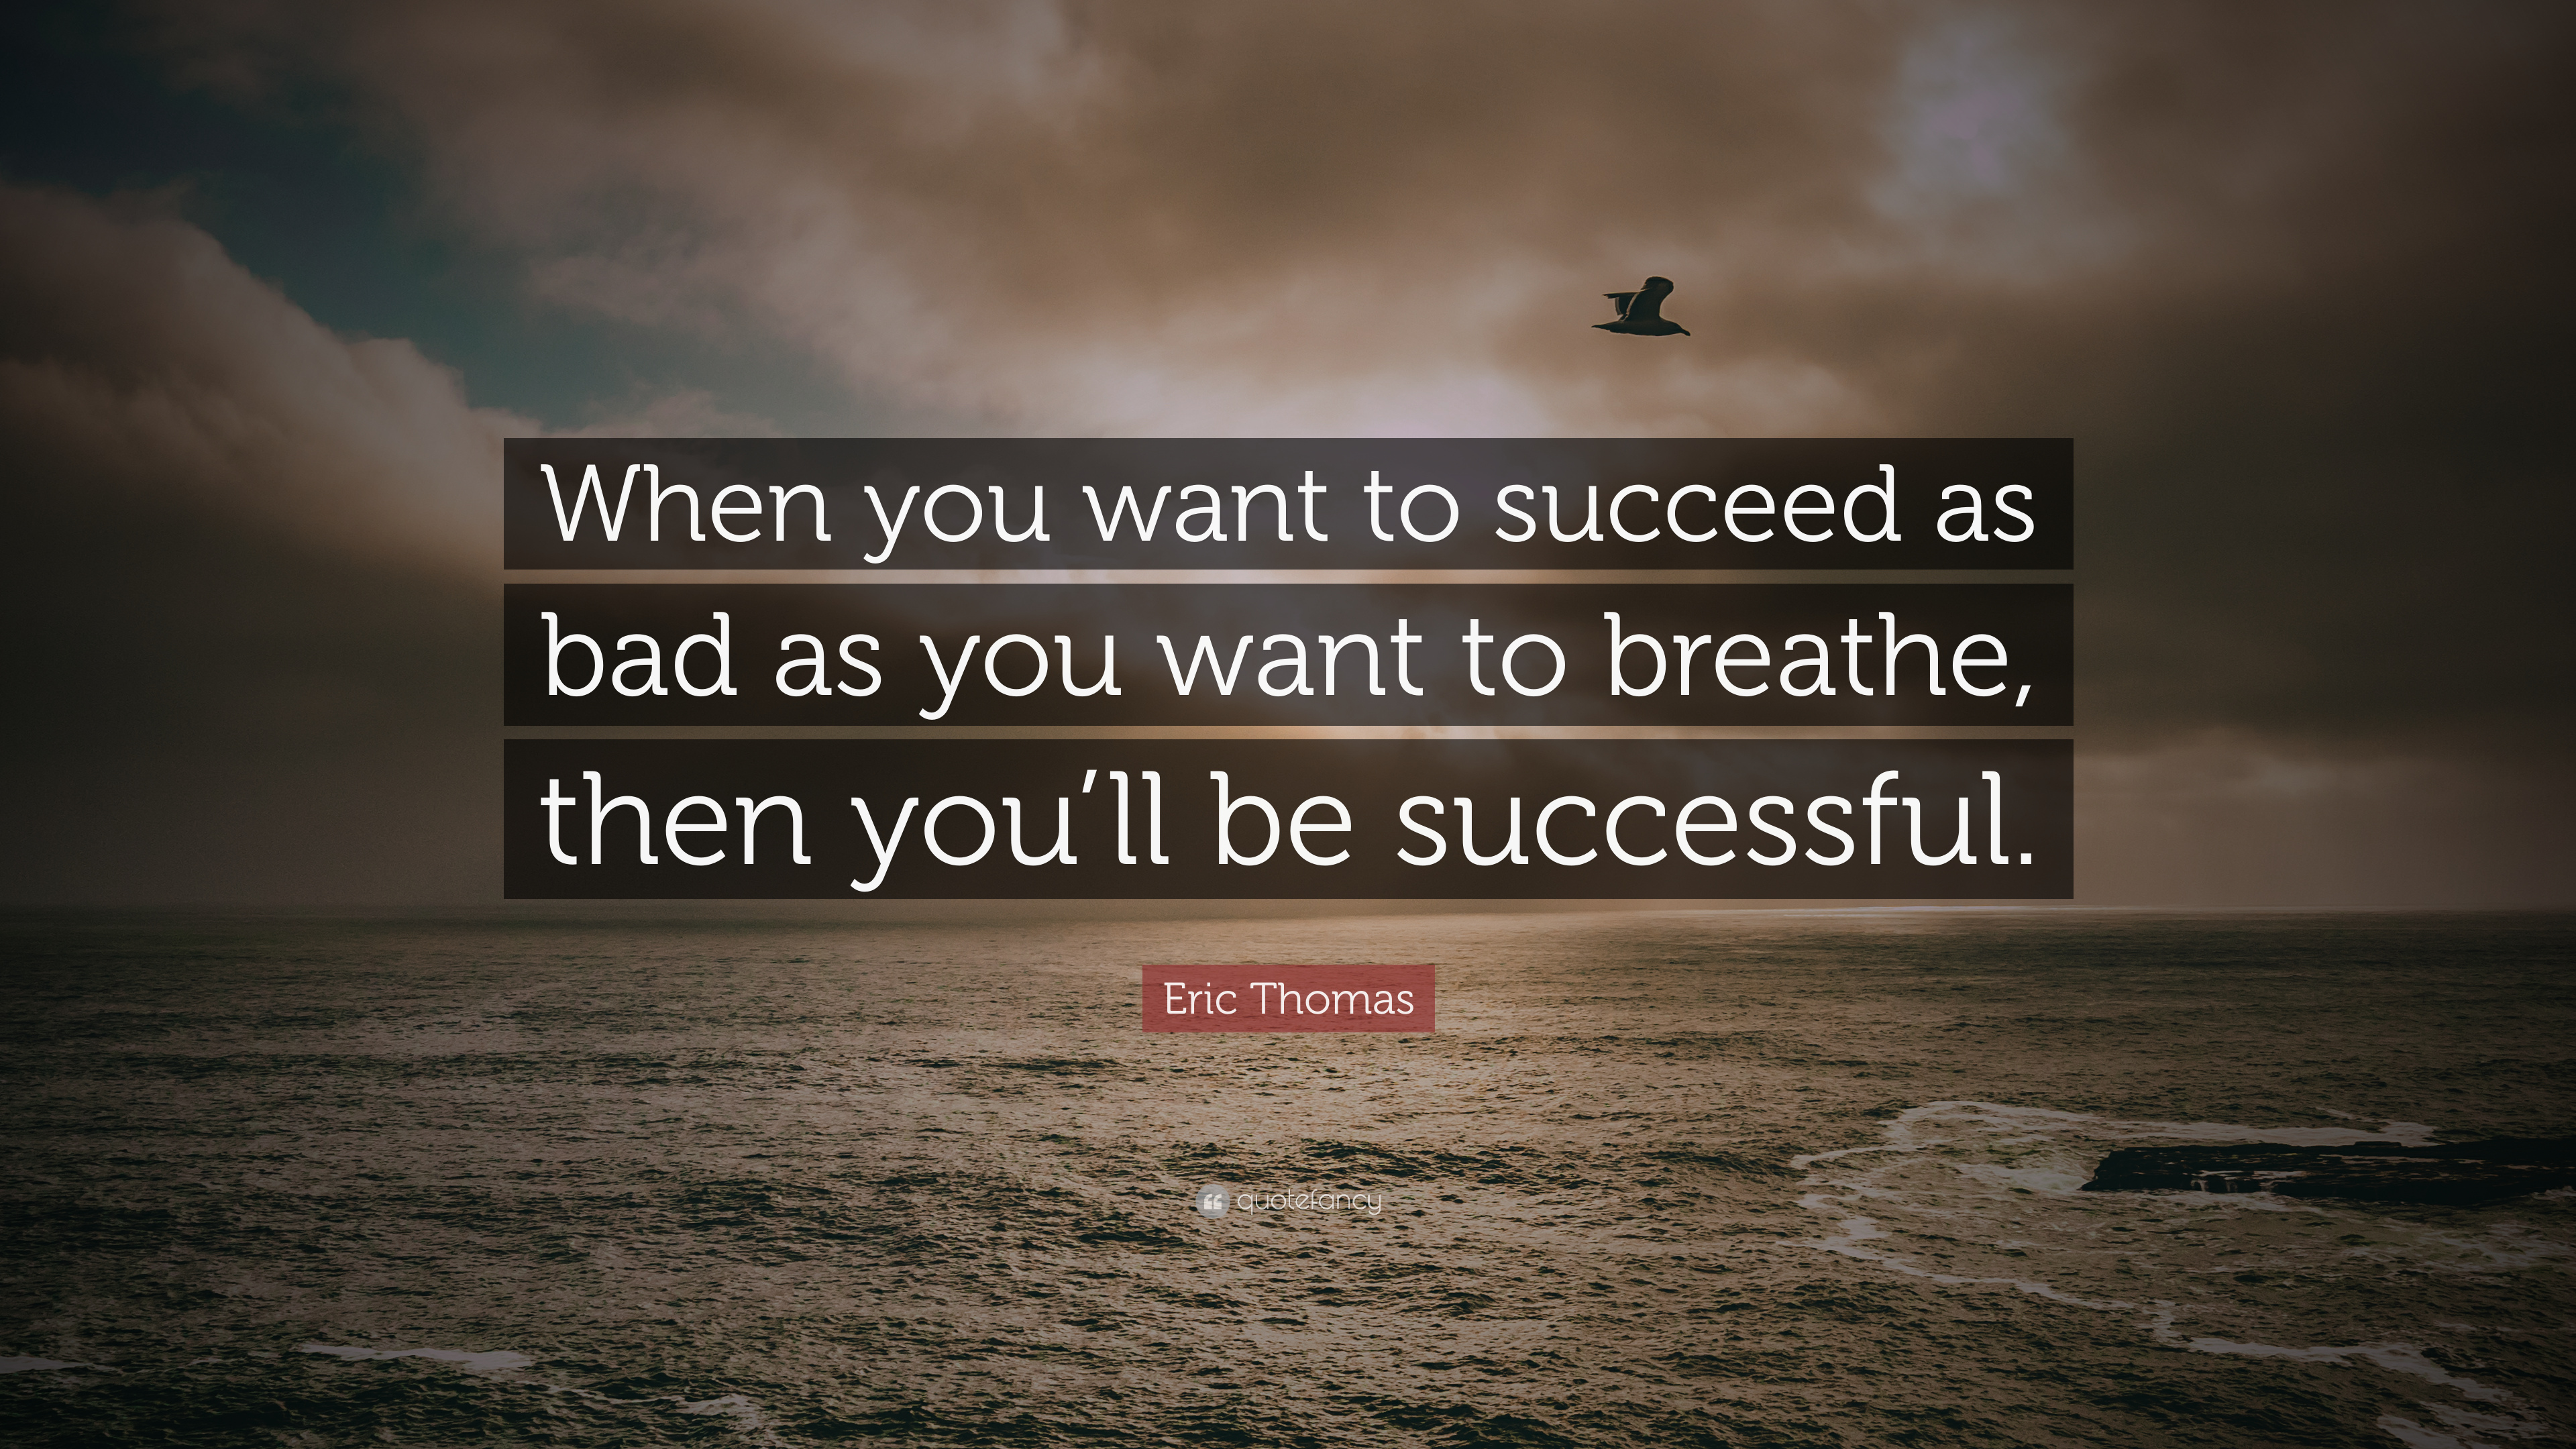 Will You When You Want You Then Succeed Be Want Bad Successful Breath